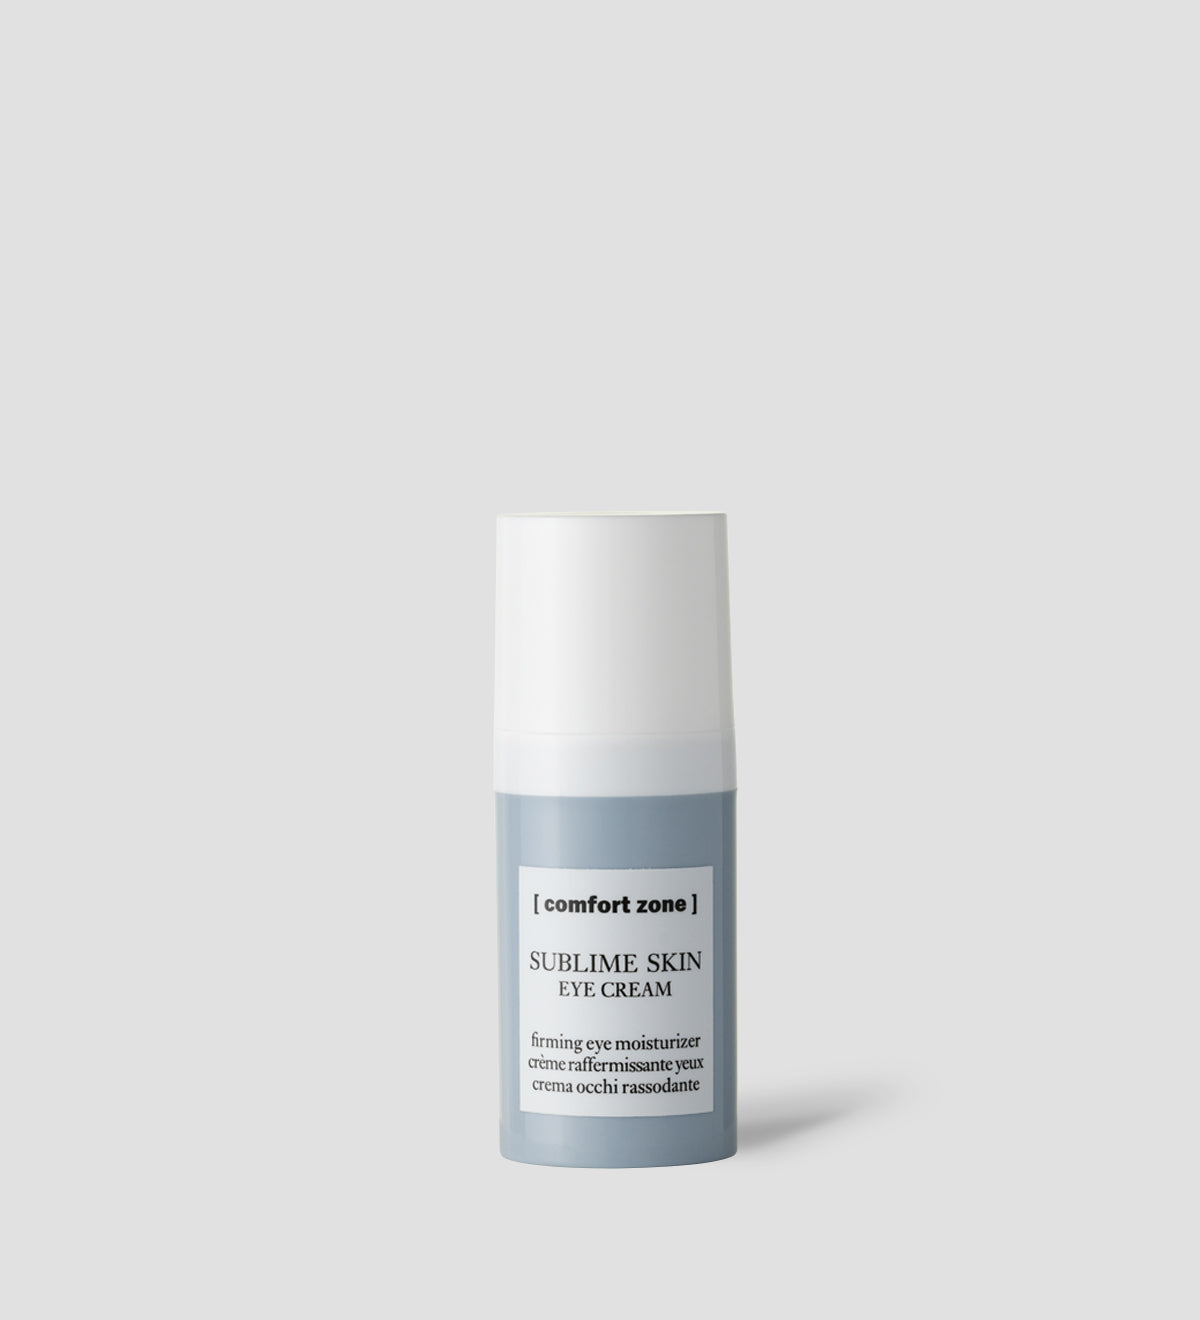 Comfort Zone: SUBLIME SKIN EYE CREAM Firming eye moisturizer-1